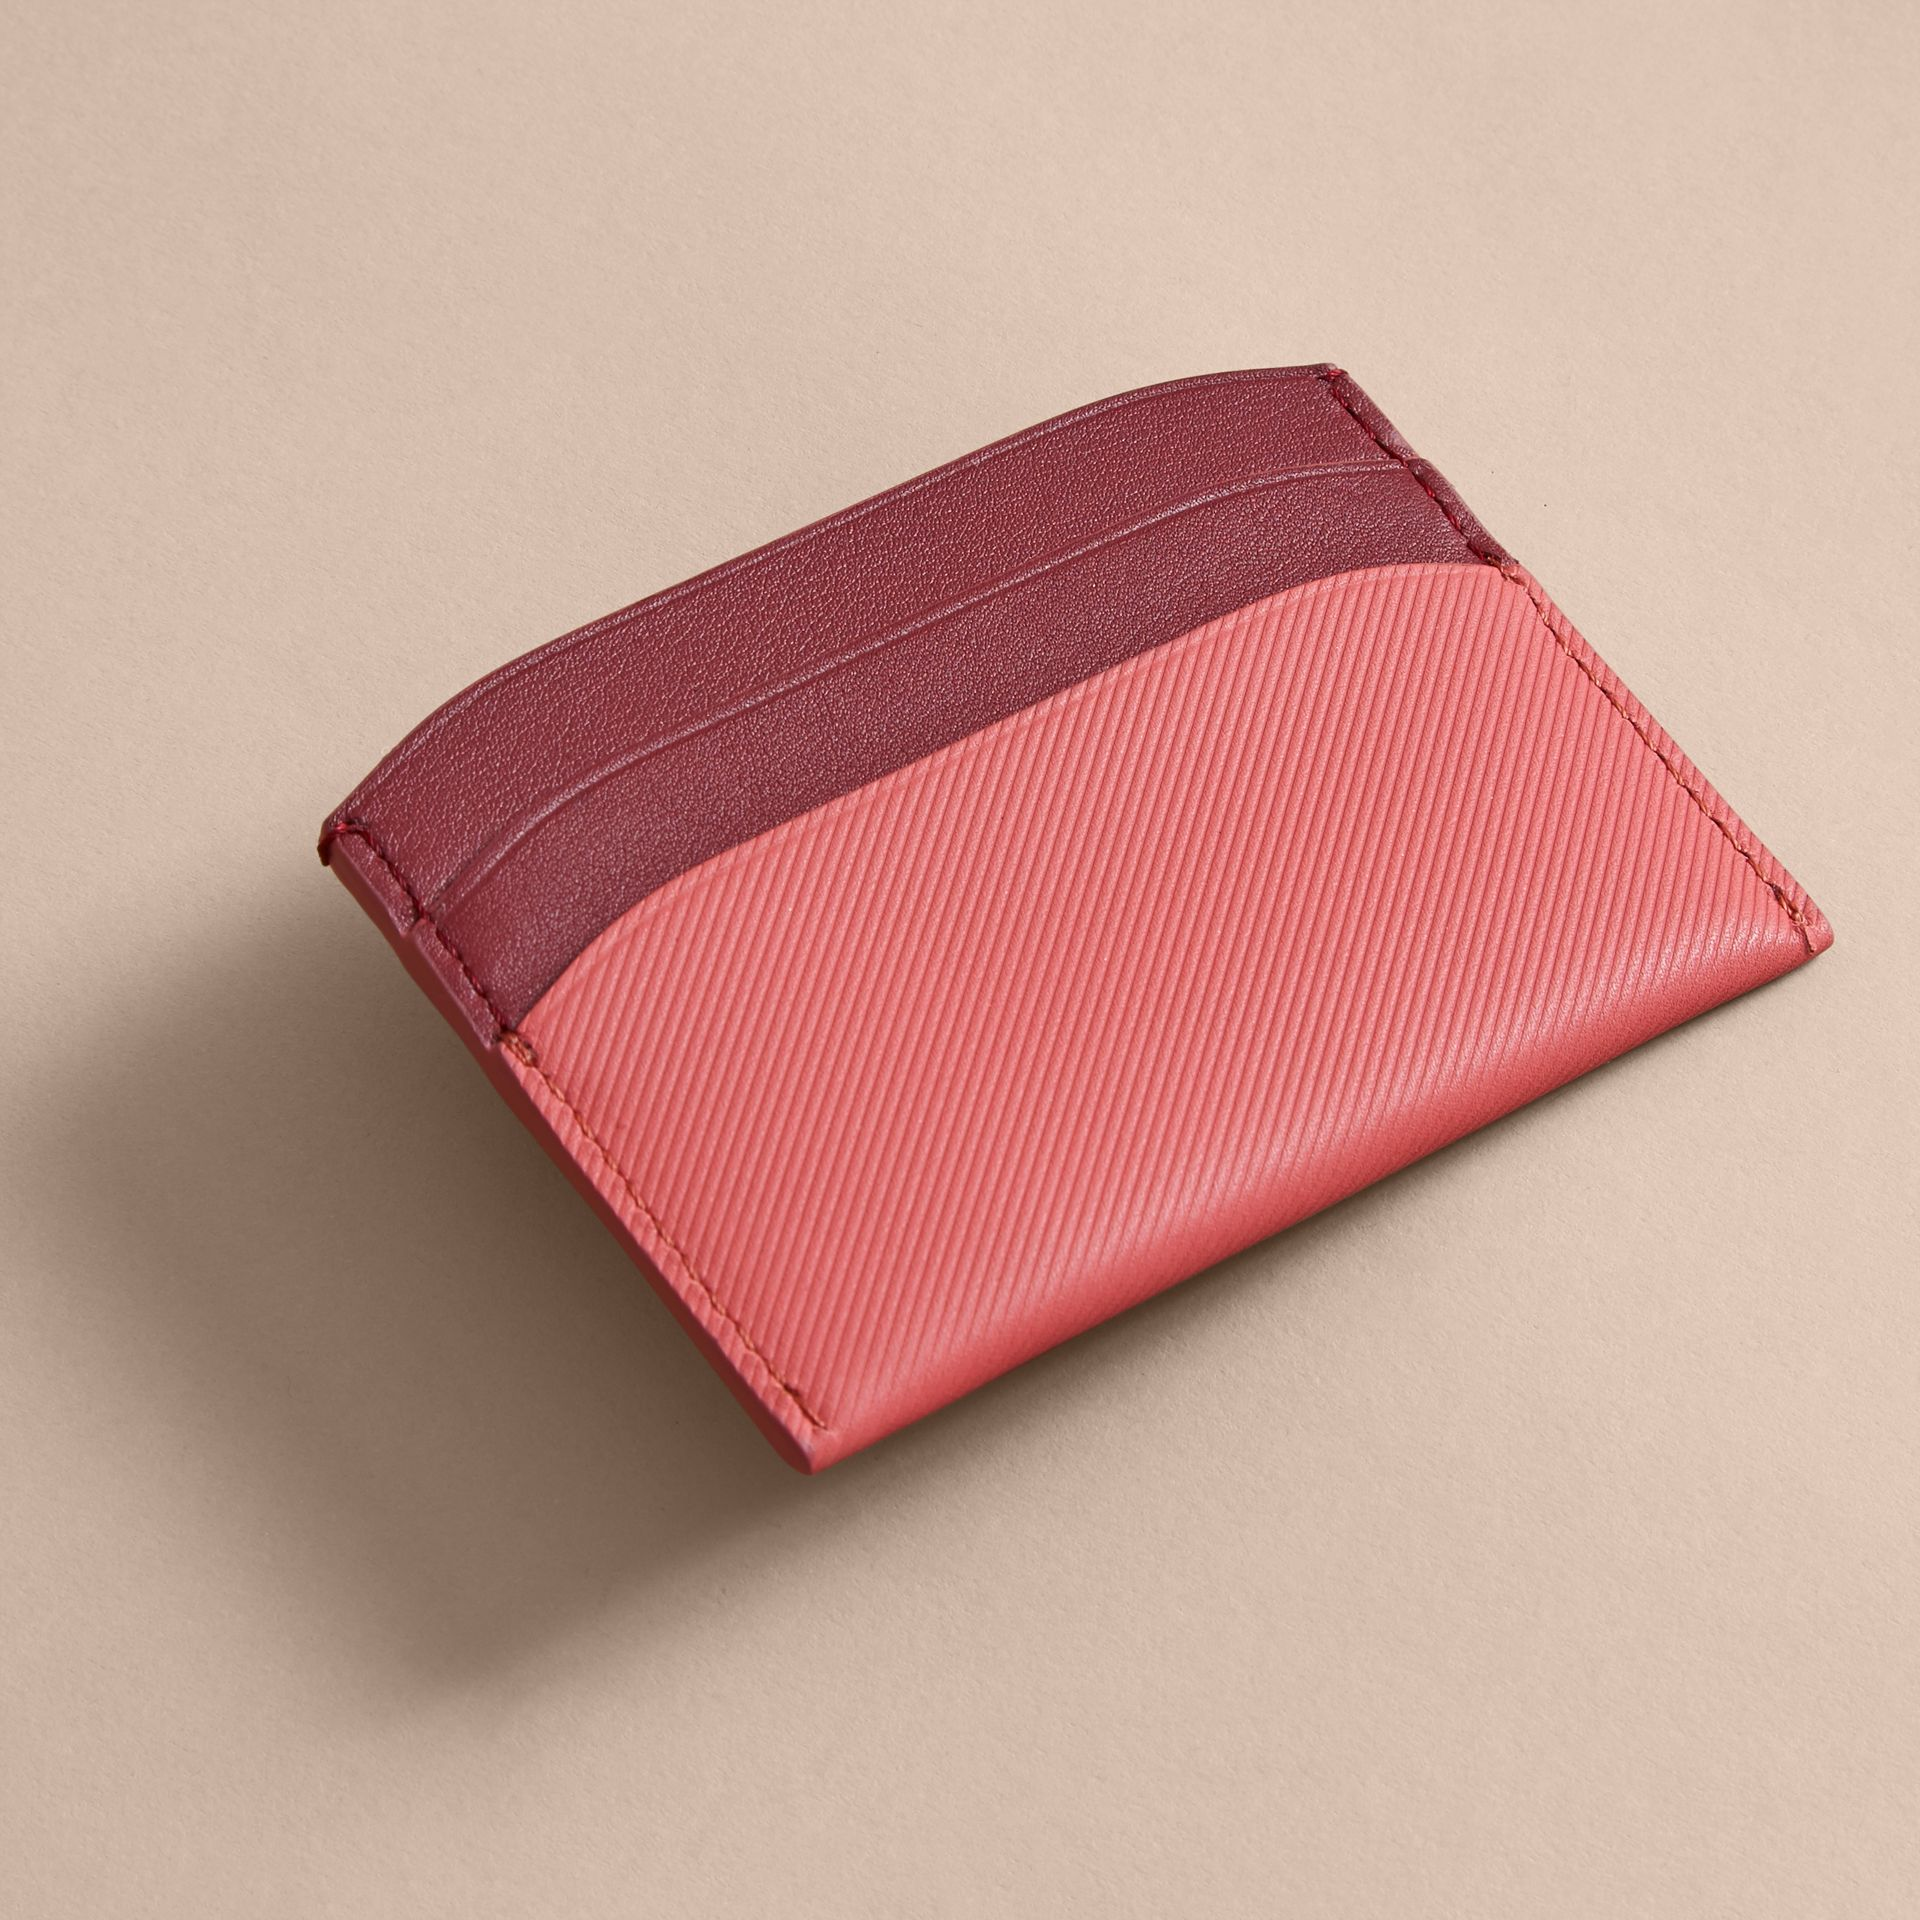 Two-tone Trench Leather Card Case in Blossom Pink/ Antique Red - Women | Burberry United Kingdom - gallery image 2